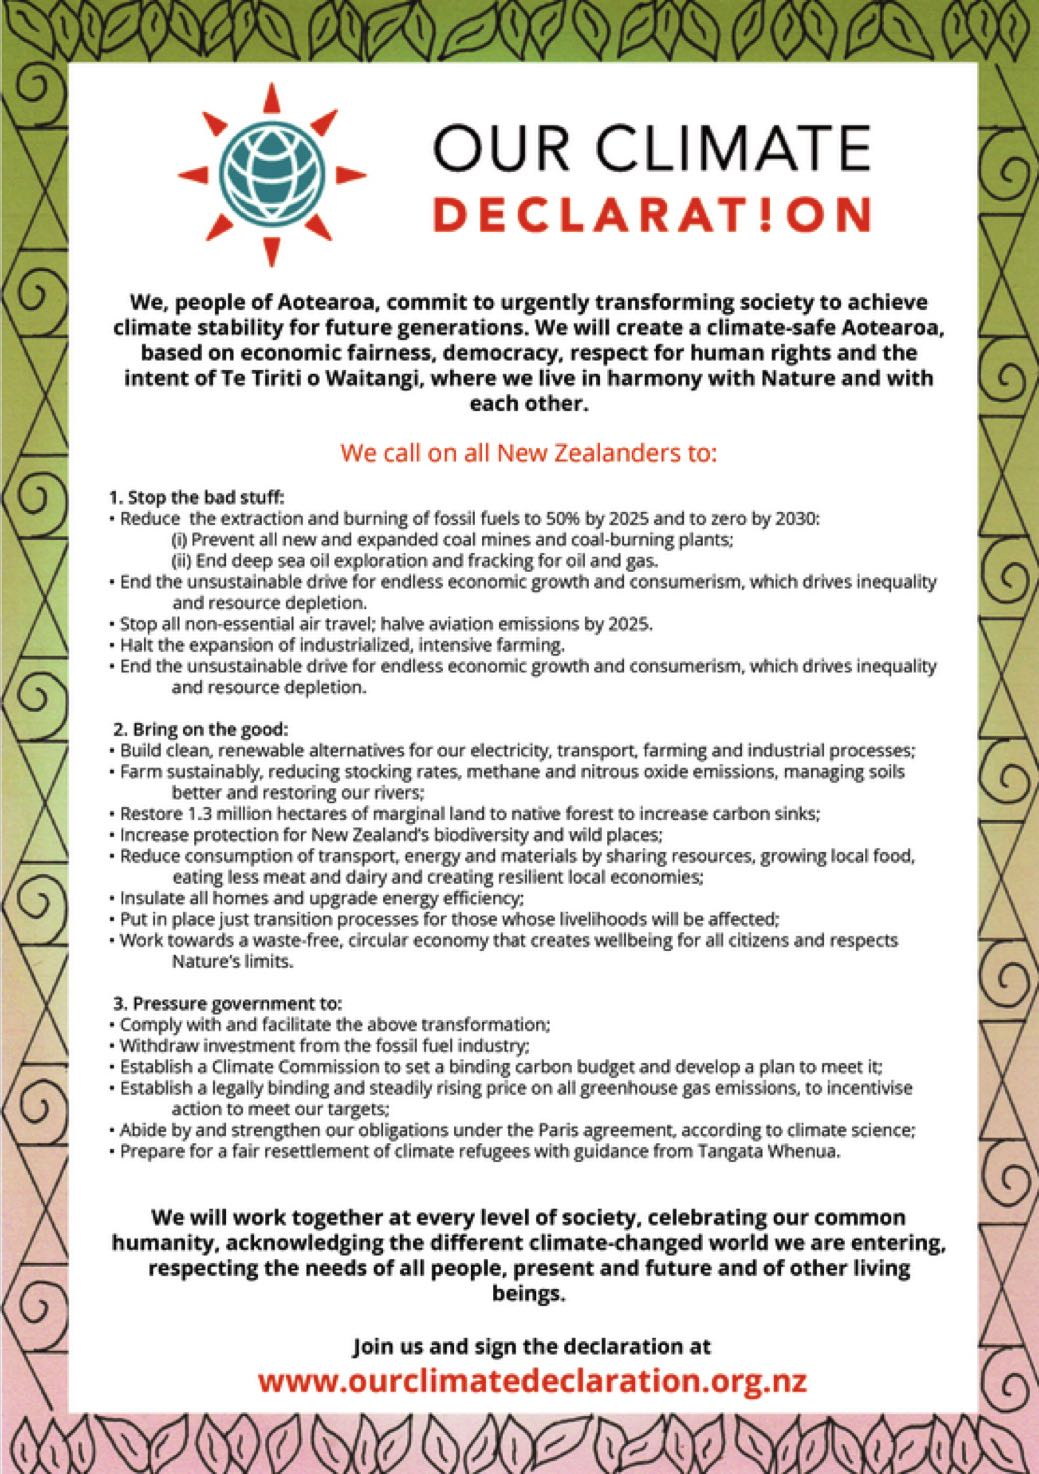 Our Climate Declaration A4 Poster